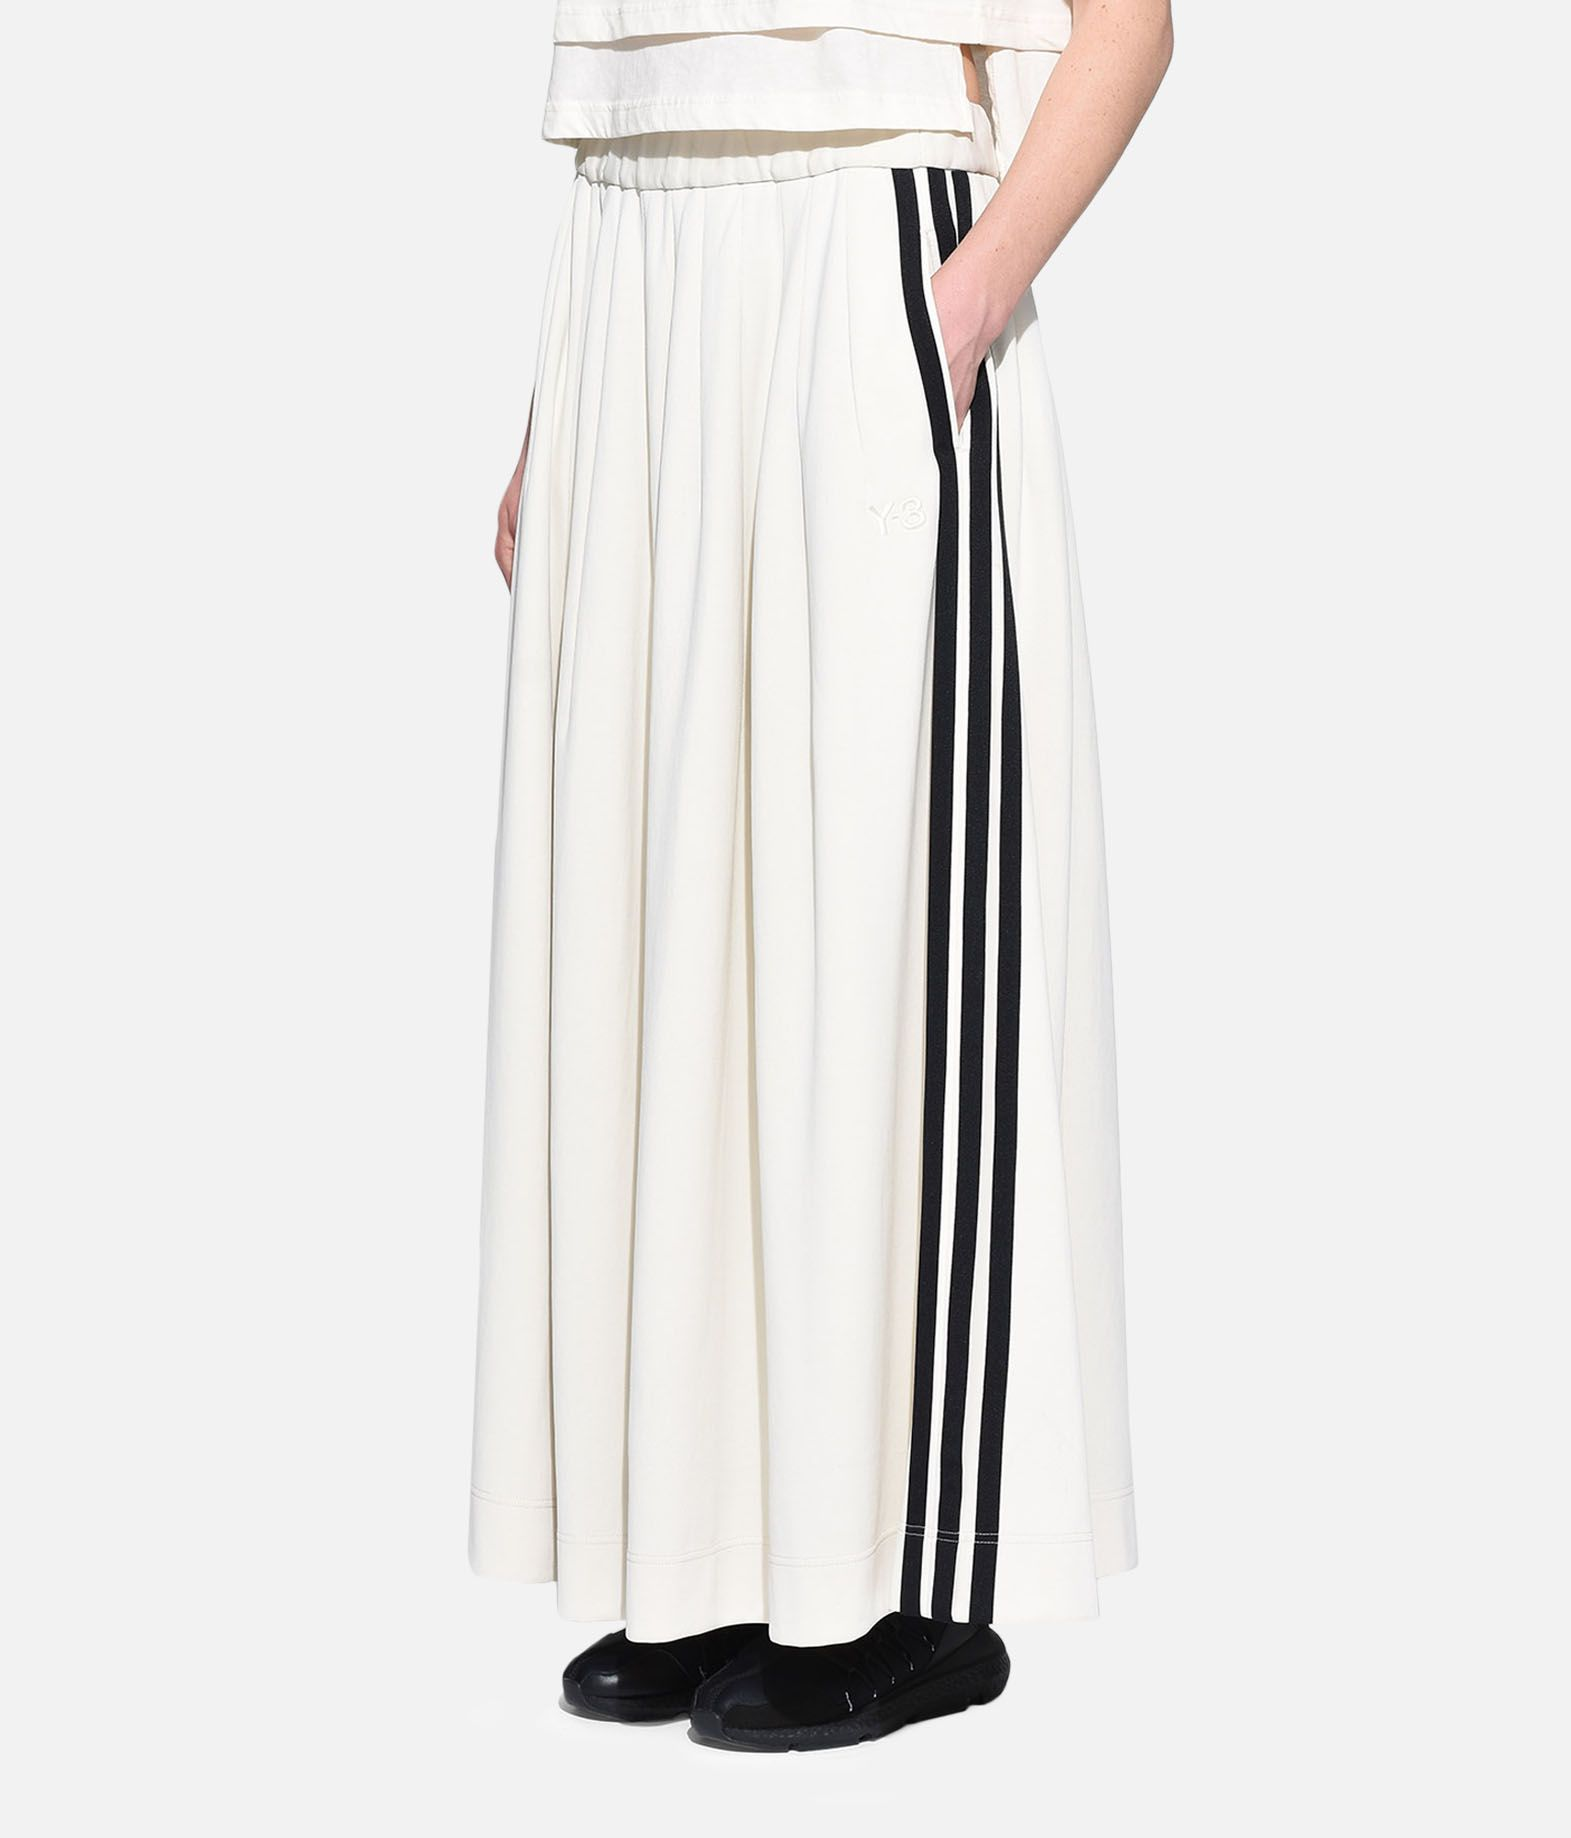 Y-3 Y-3 3-Stripes Selvedge Matte Track Skirt Gonna ginocchio Donna e